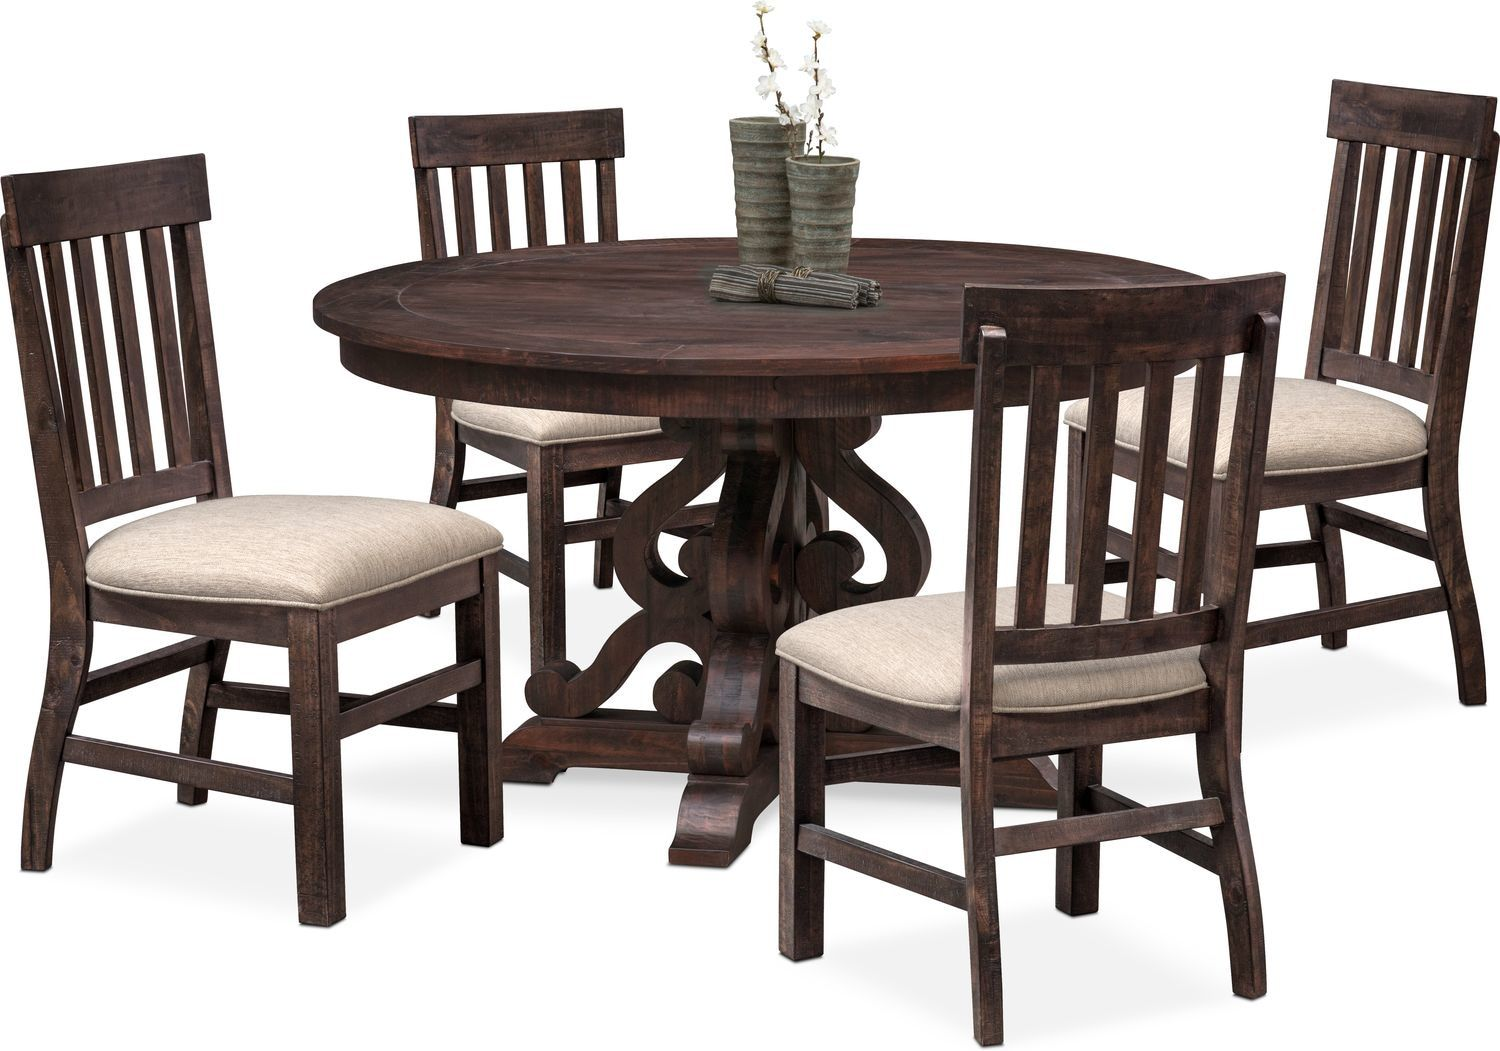 Charthouse Round Dining Table And 4 Side Chairs Dining Table